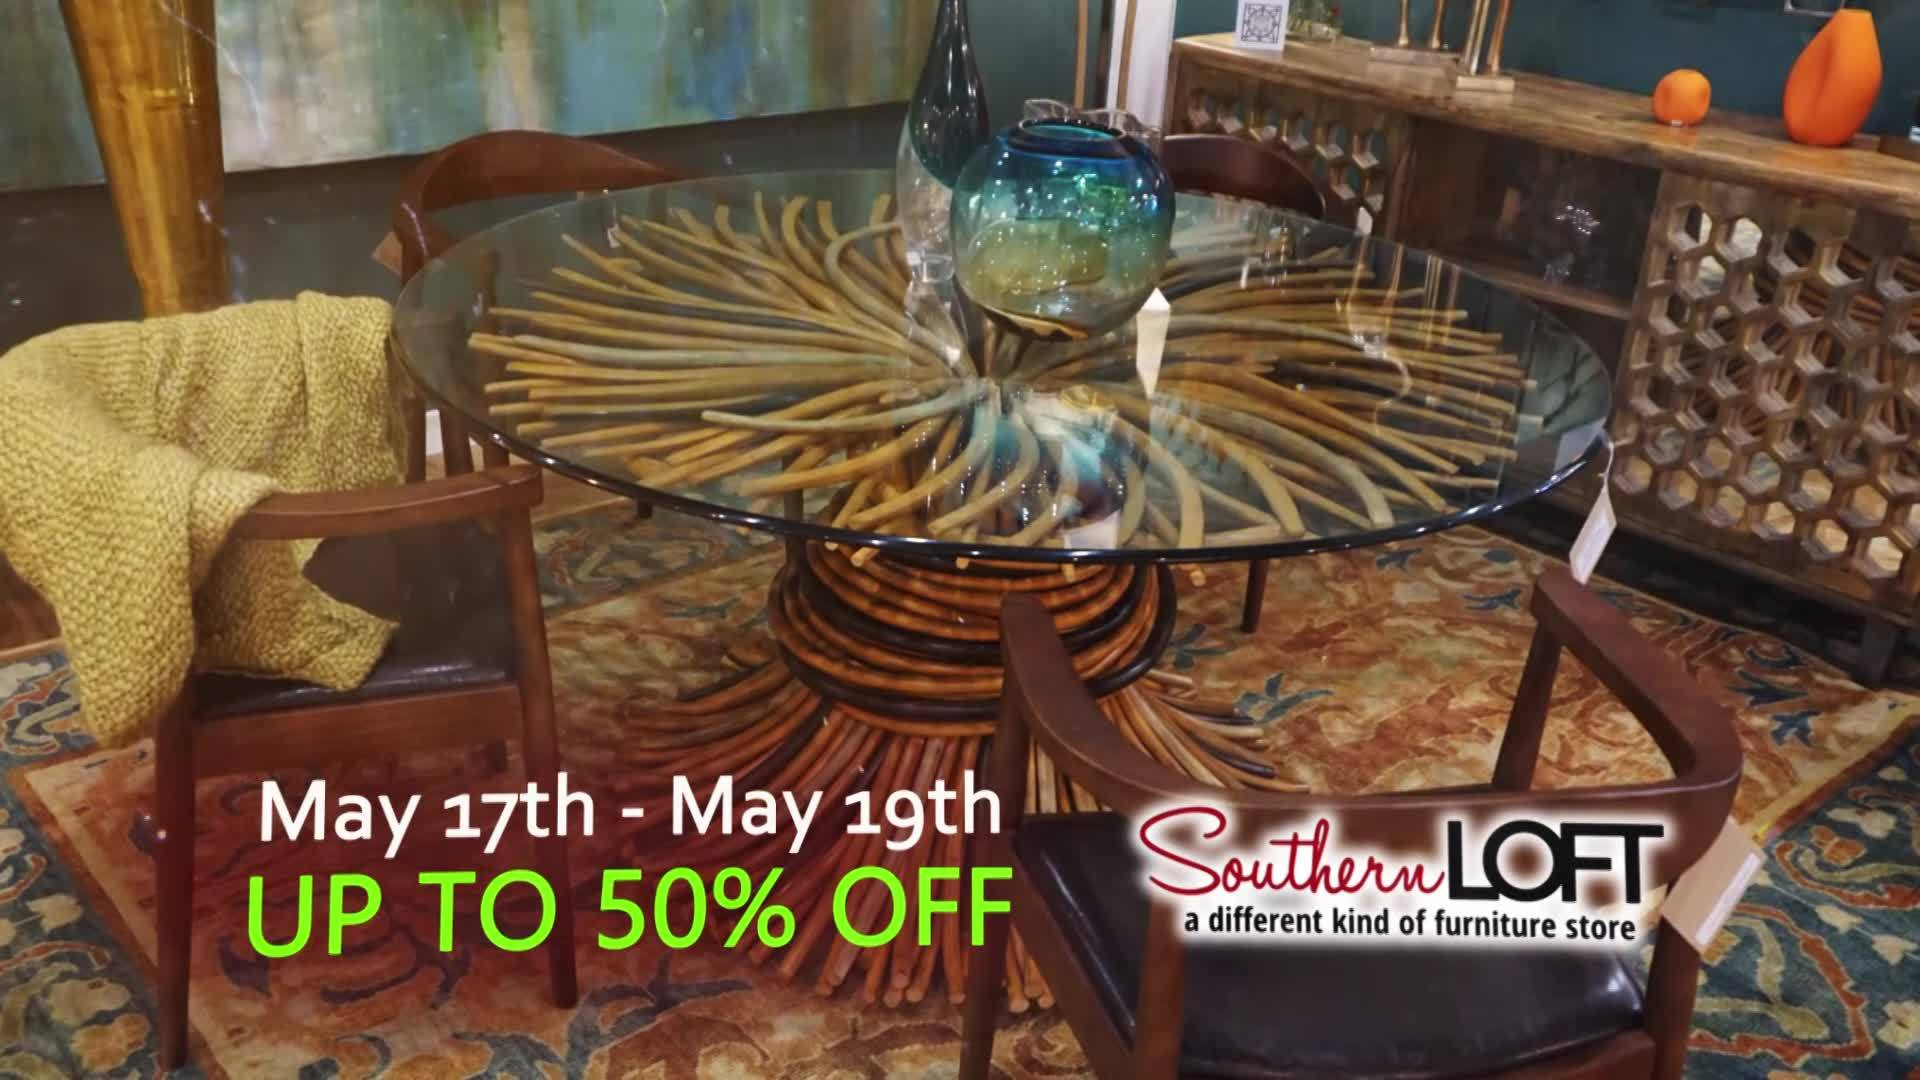 Southern loft a different kind of furniture store is having their Semi-Annual market Sale and it is better than ever! 